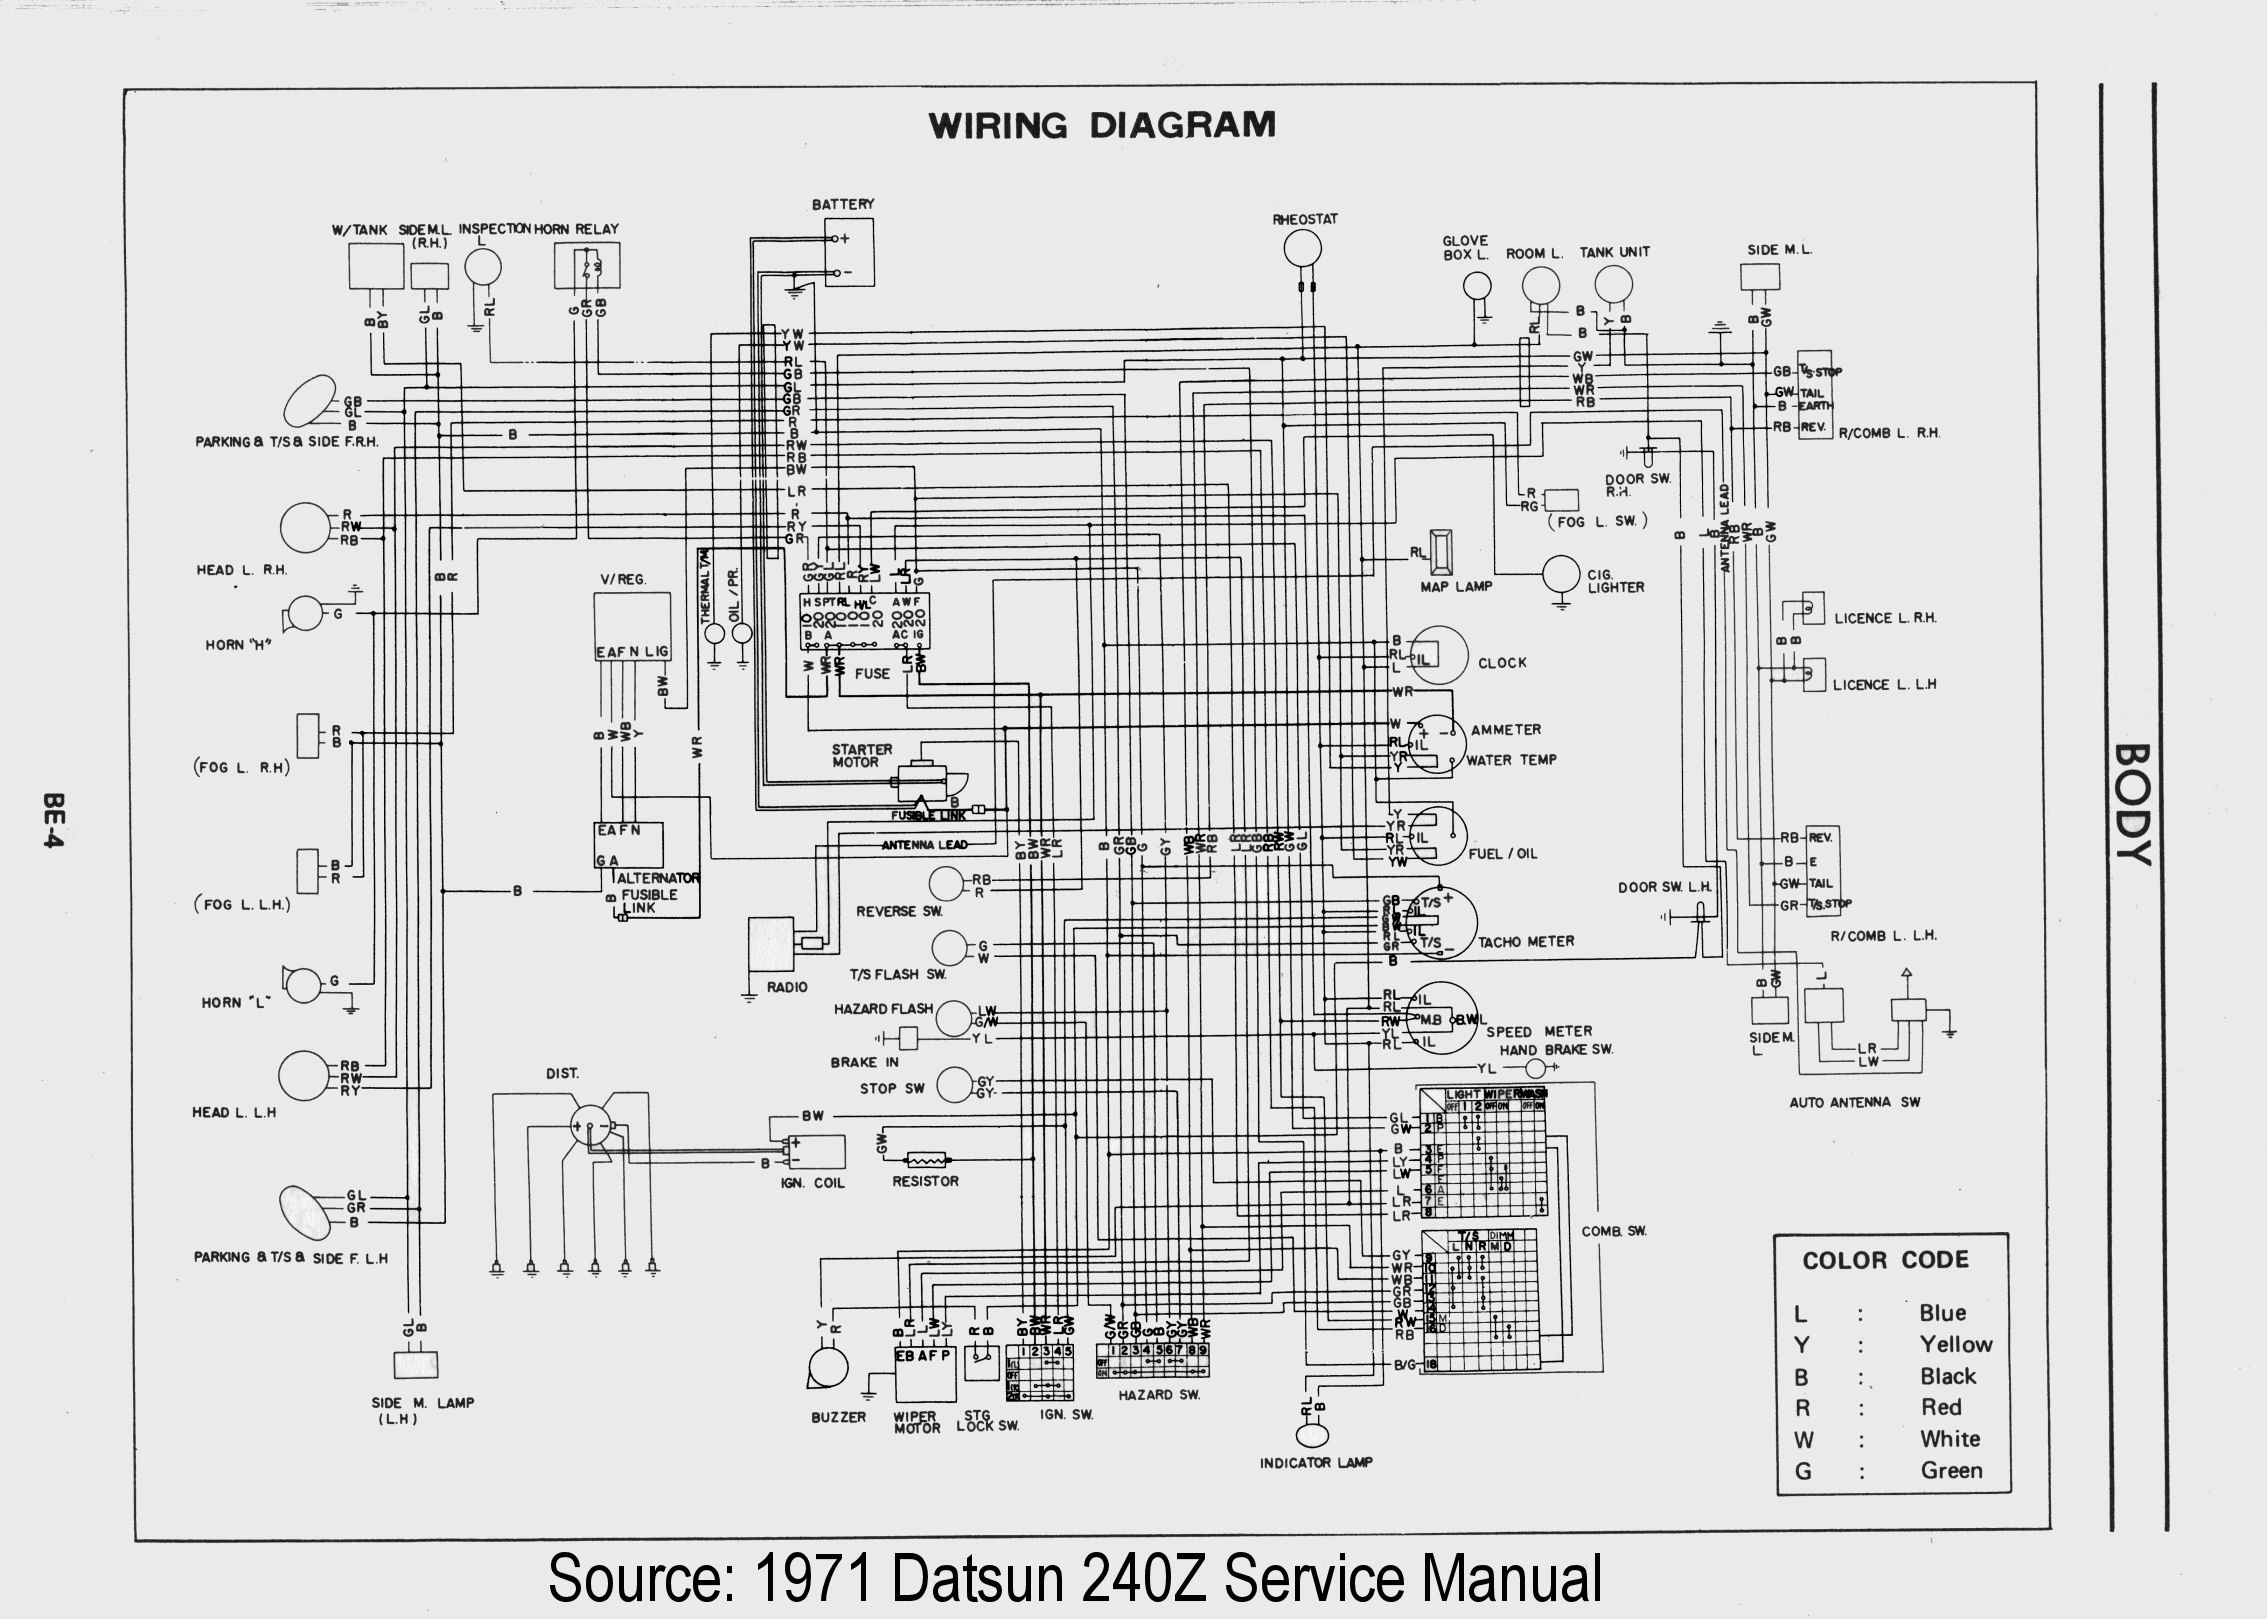 280zx wiring diagram wiring diagram rh blaknwyt co Basic Electrical Wiring Diagrams Basic Electrical Wiring Diagrams